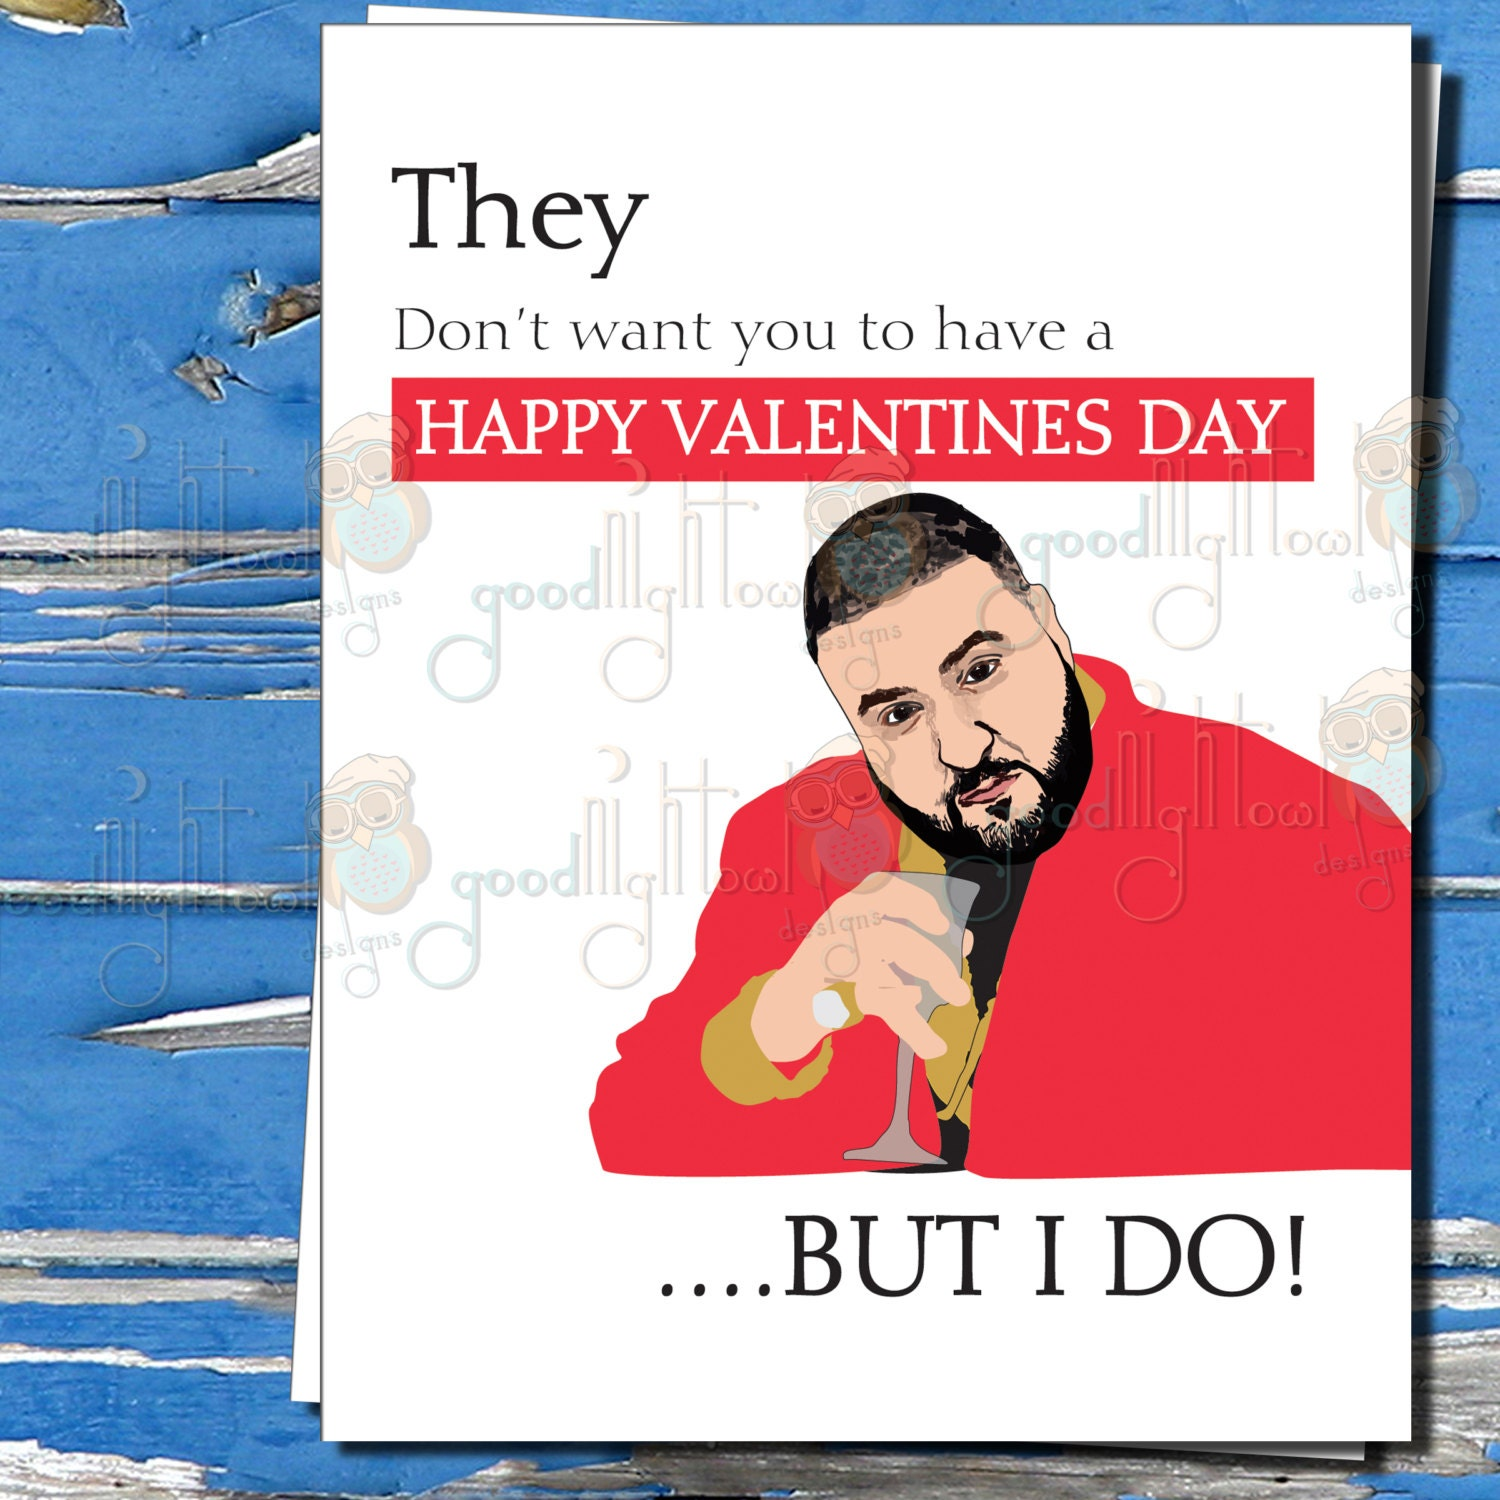 Funny Valentines Cards Meme : Dj khaled funny valentines day card they don t want